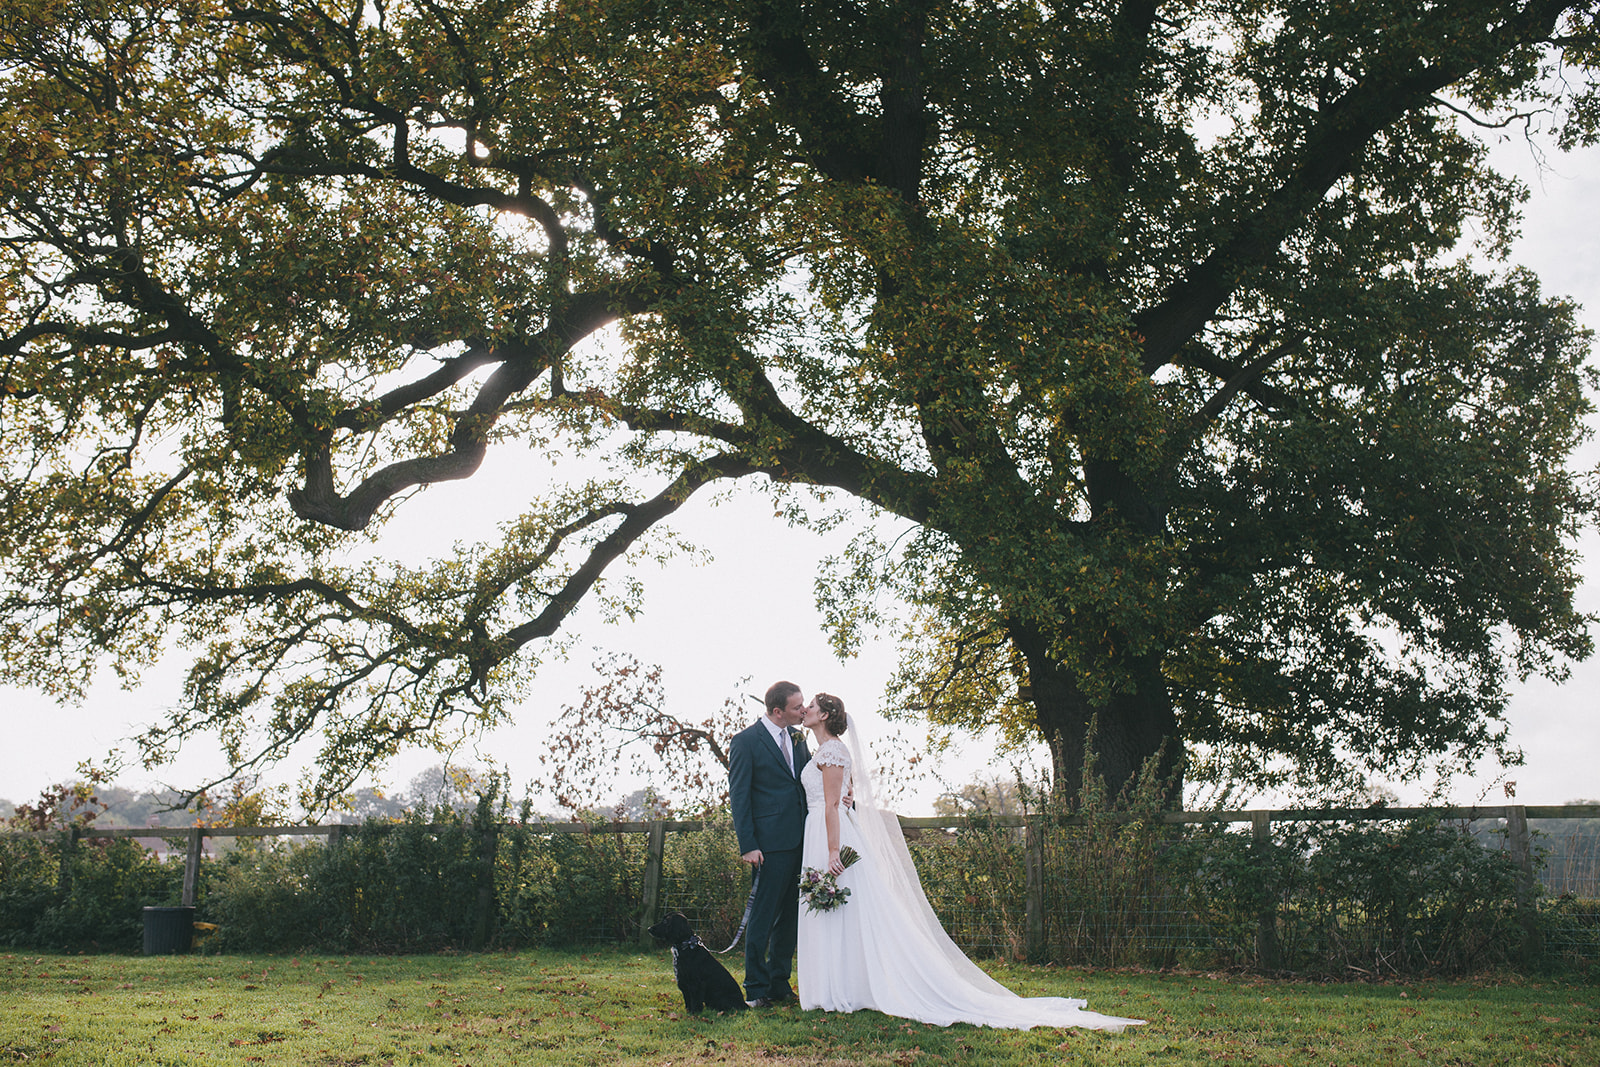 a wide shot of the bride and groom kissing with their dog. star inn at harome near helmsley, north yorkshire wedding photographer. stop motion wedding films uk.